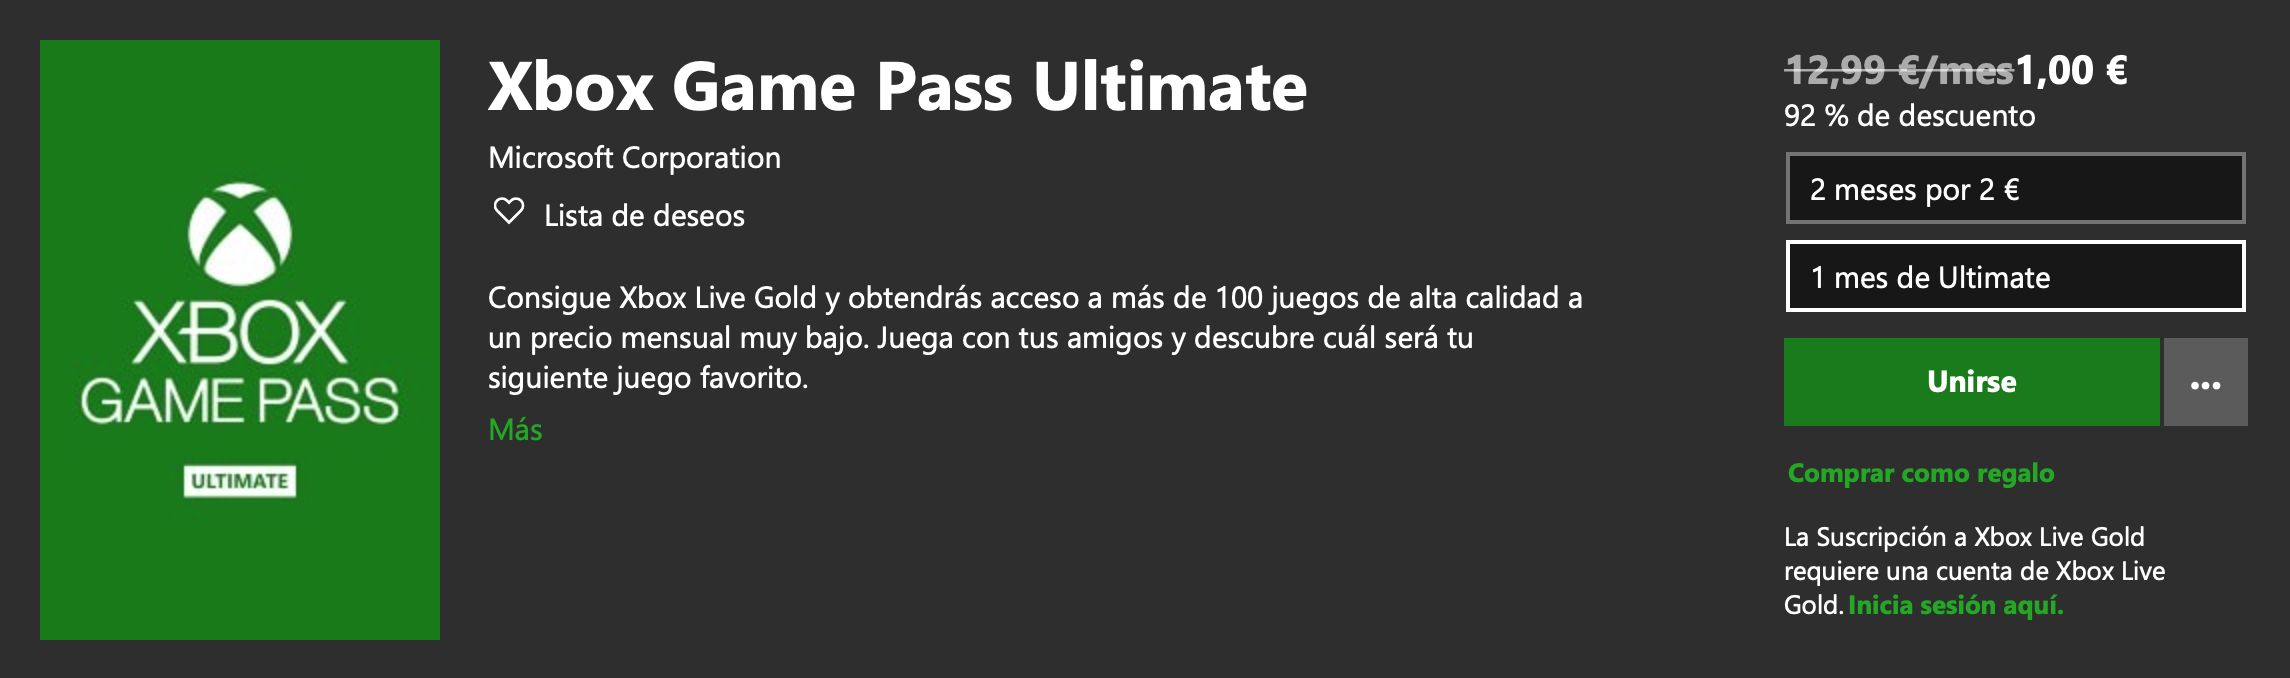 Nueva oferta Xbox Game Pass Ultimate: 2 meses por 2€